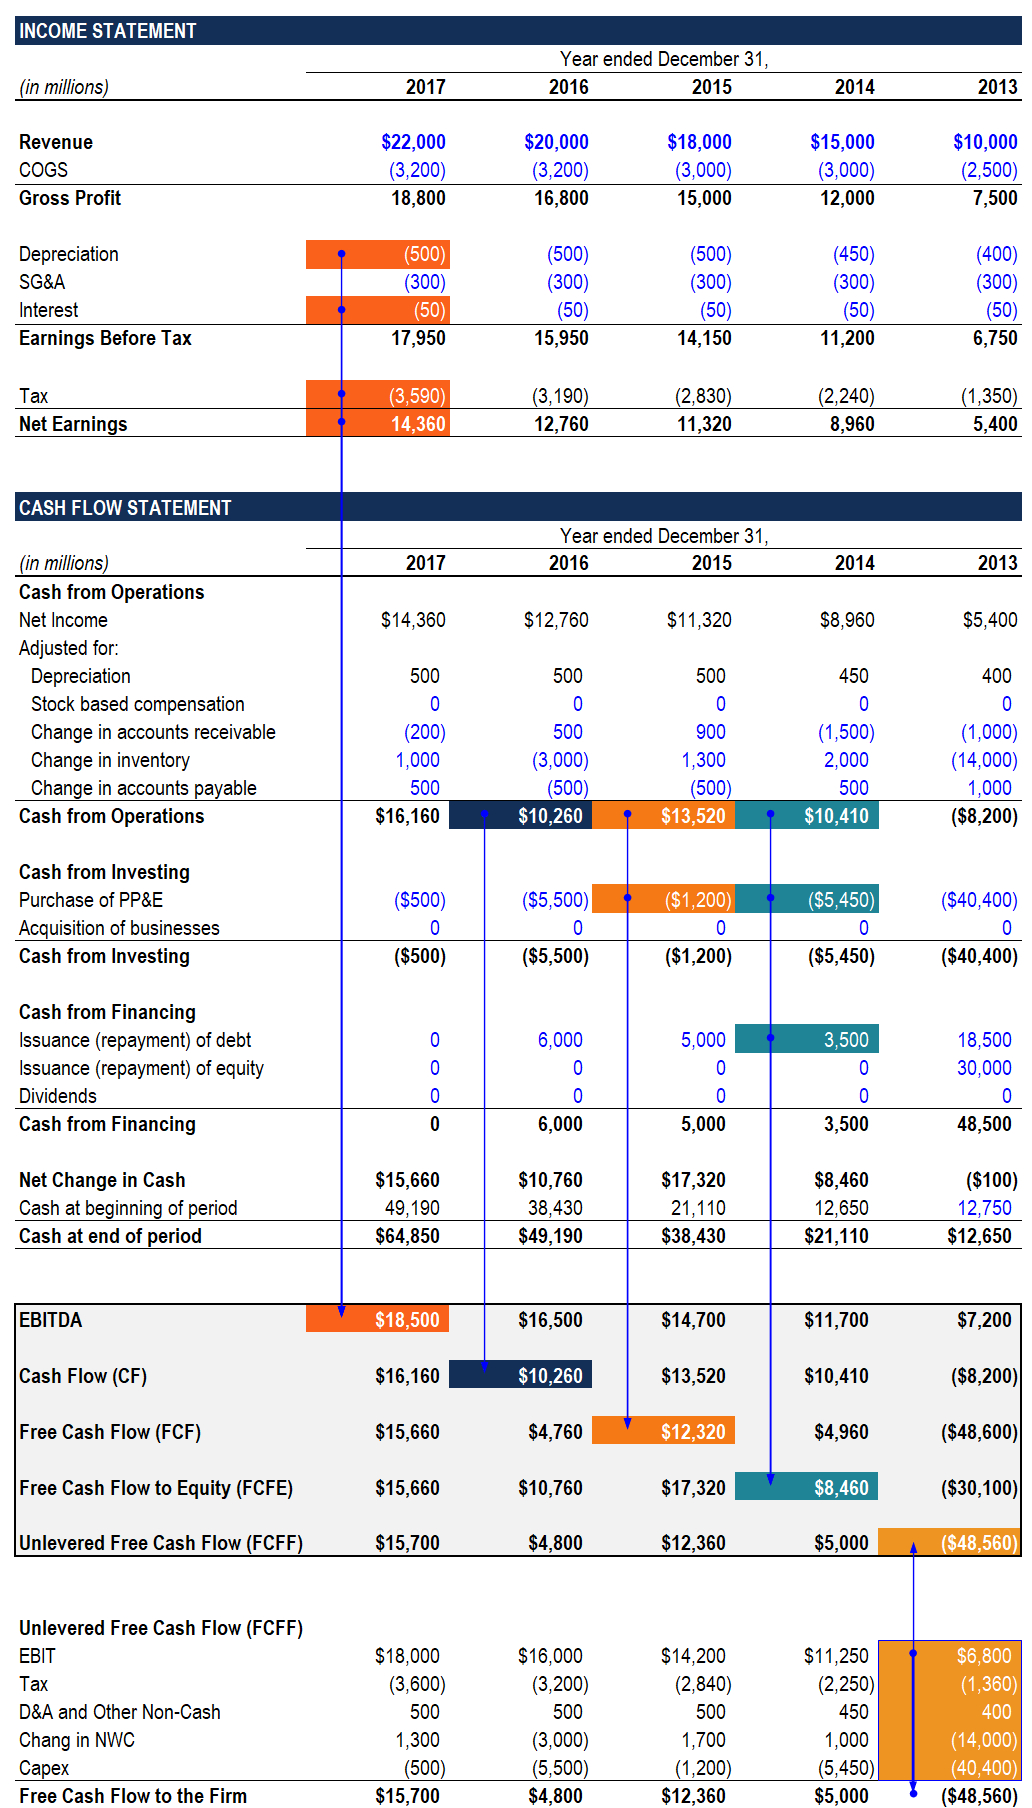 Spreadsheet For Statement Of Cash Flows Pertaining To The Ultimate Cash Flow Guide  Understand Ebitda, Cf, Fcf, Fcff